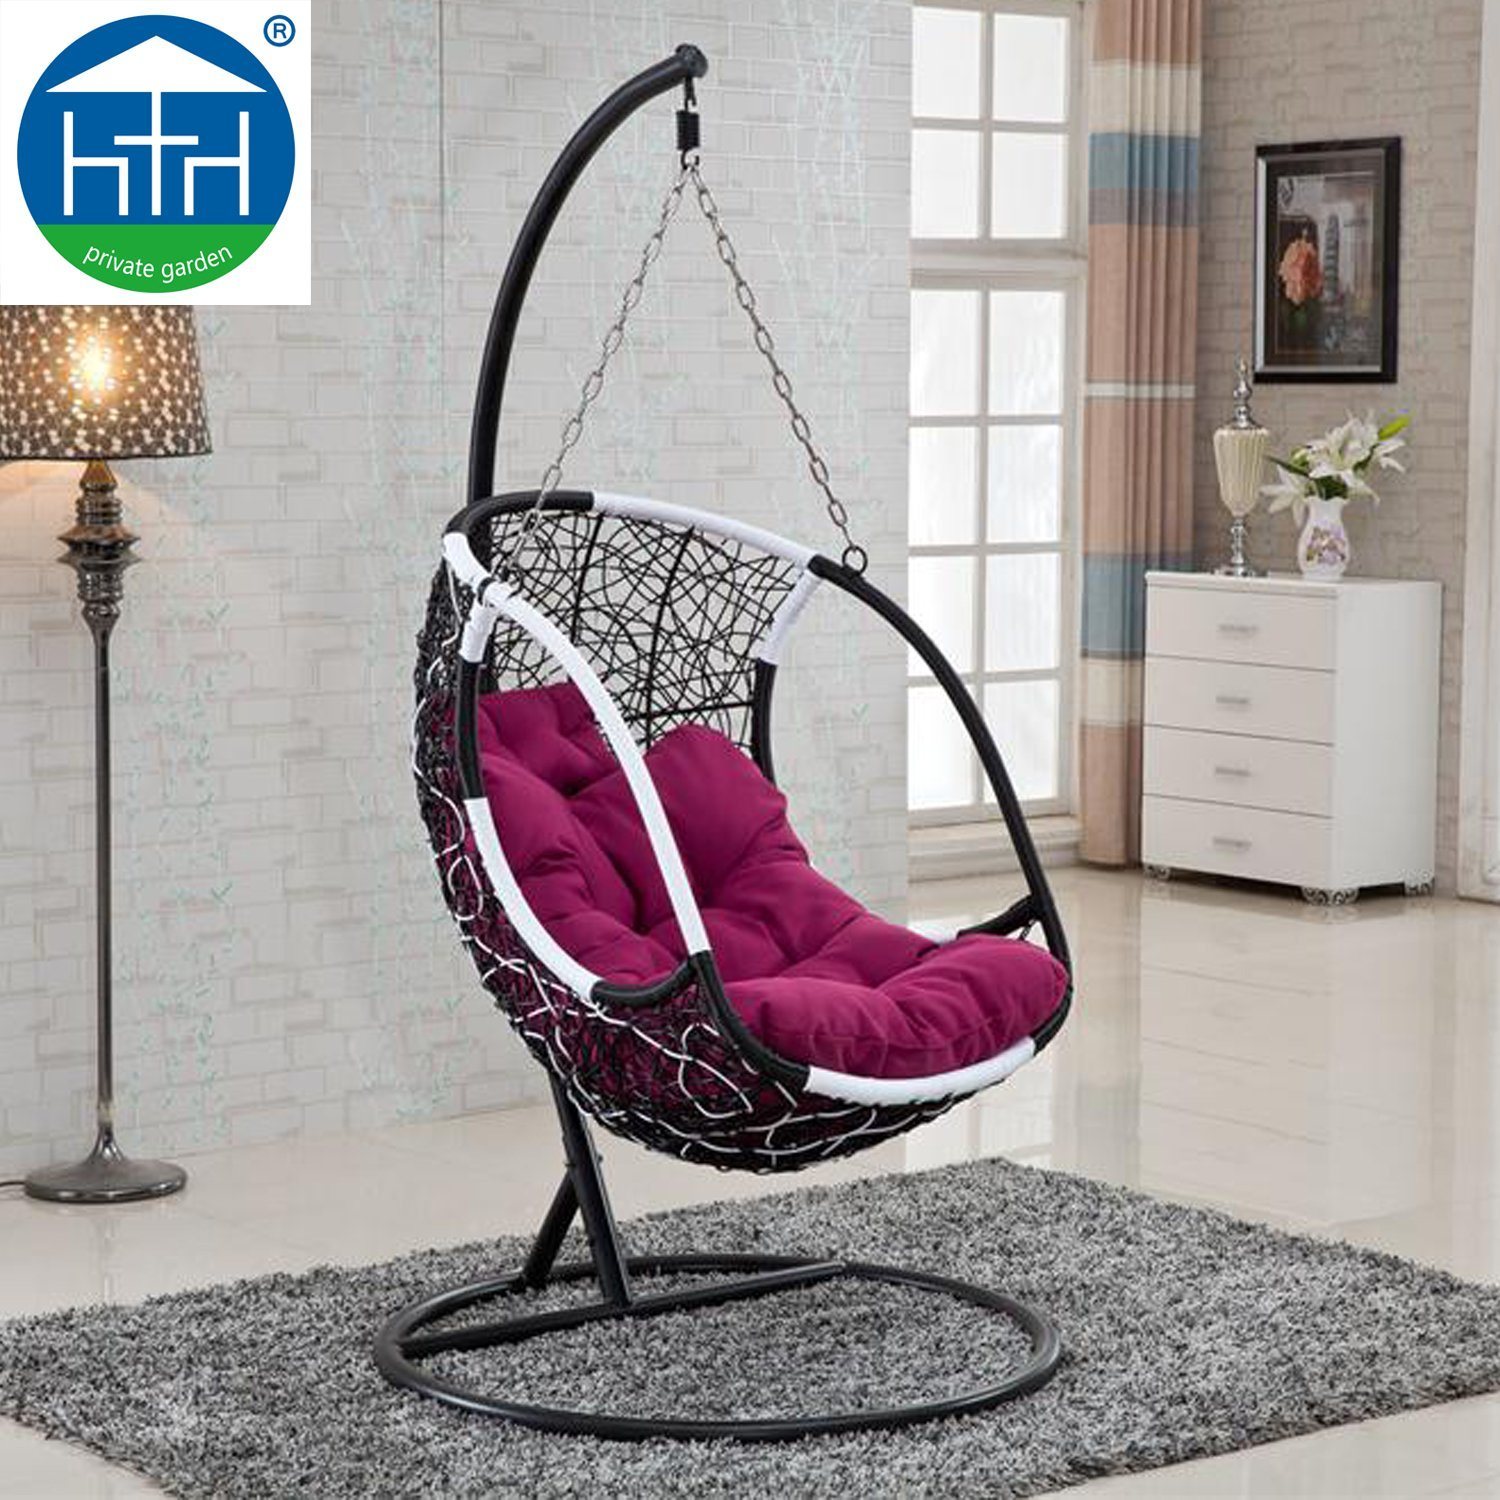 Swinging Chair Outdoor Hot Item Cheap Outdoor Garden Furniture Swinging Chair With Cushion